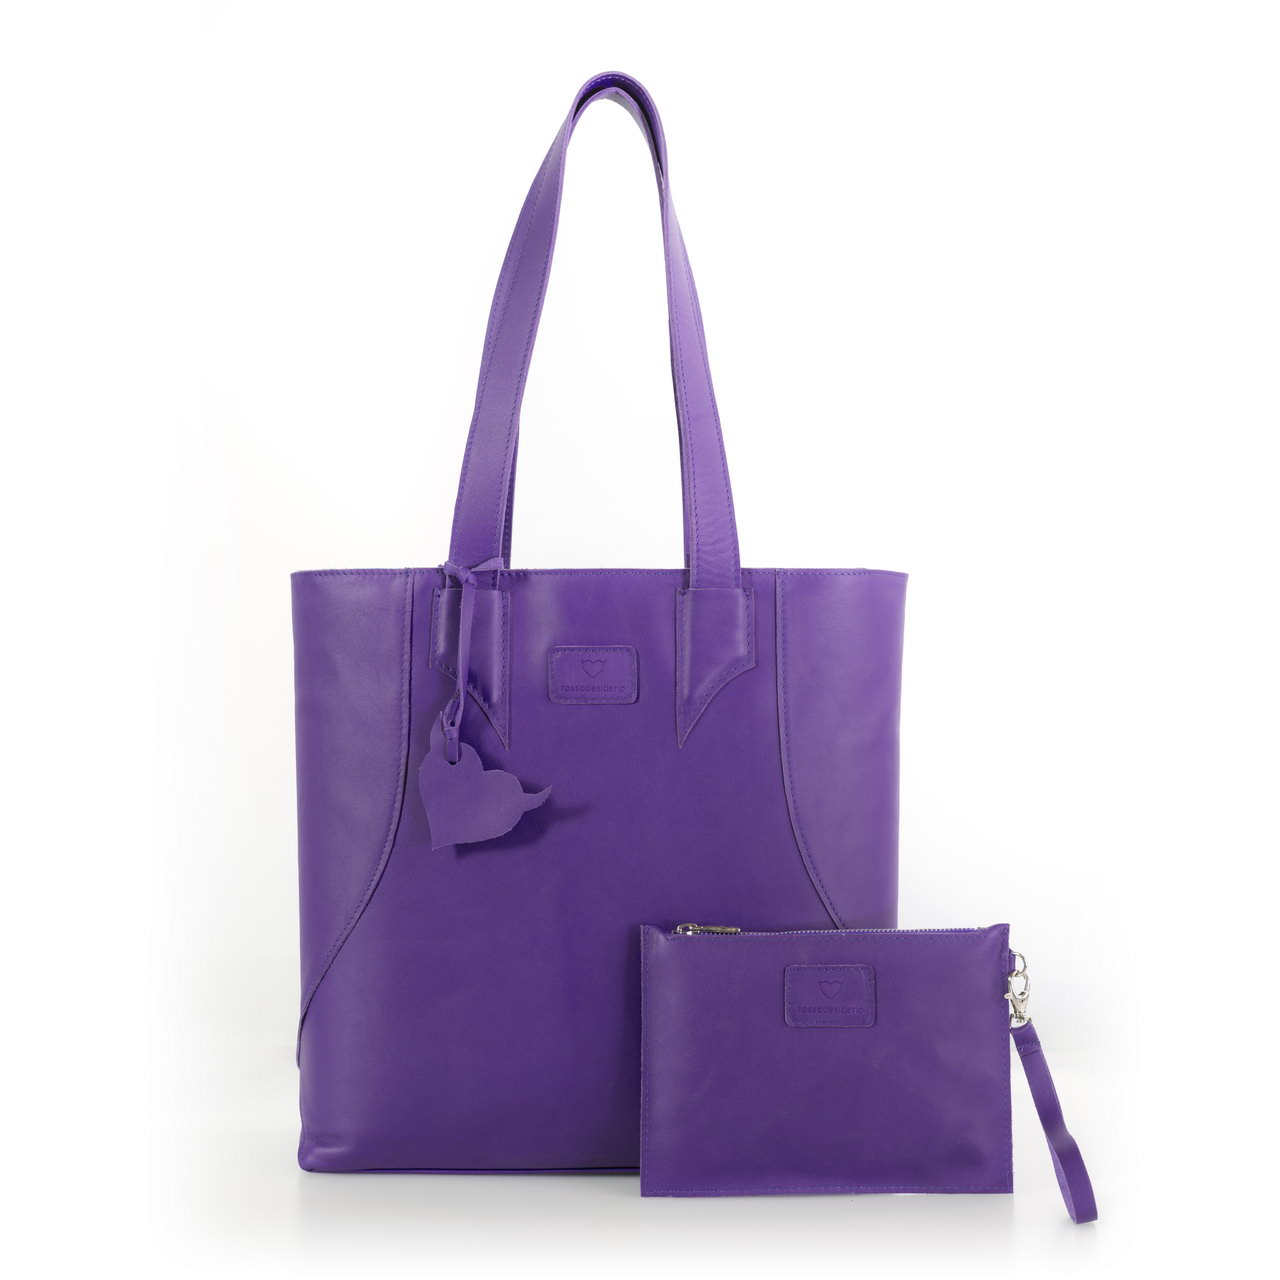 Brava Violet, shopper bag made with real leather